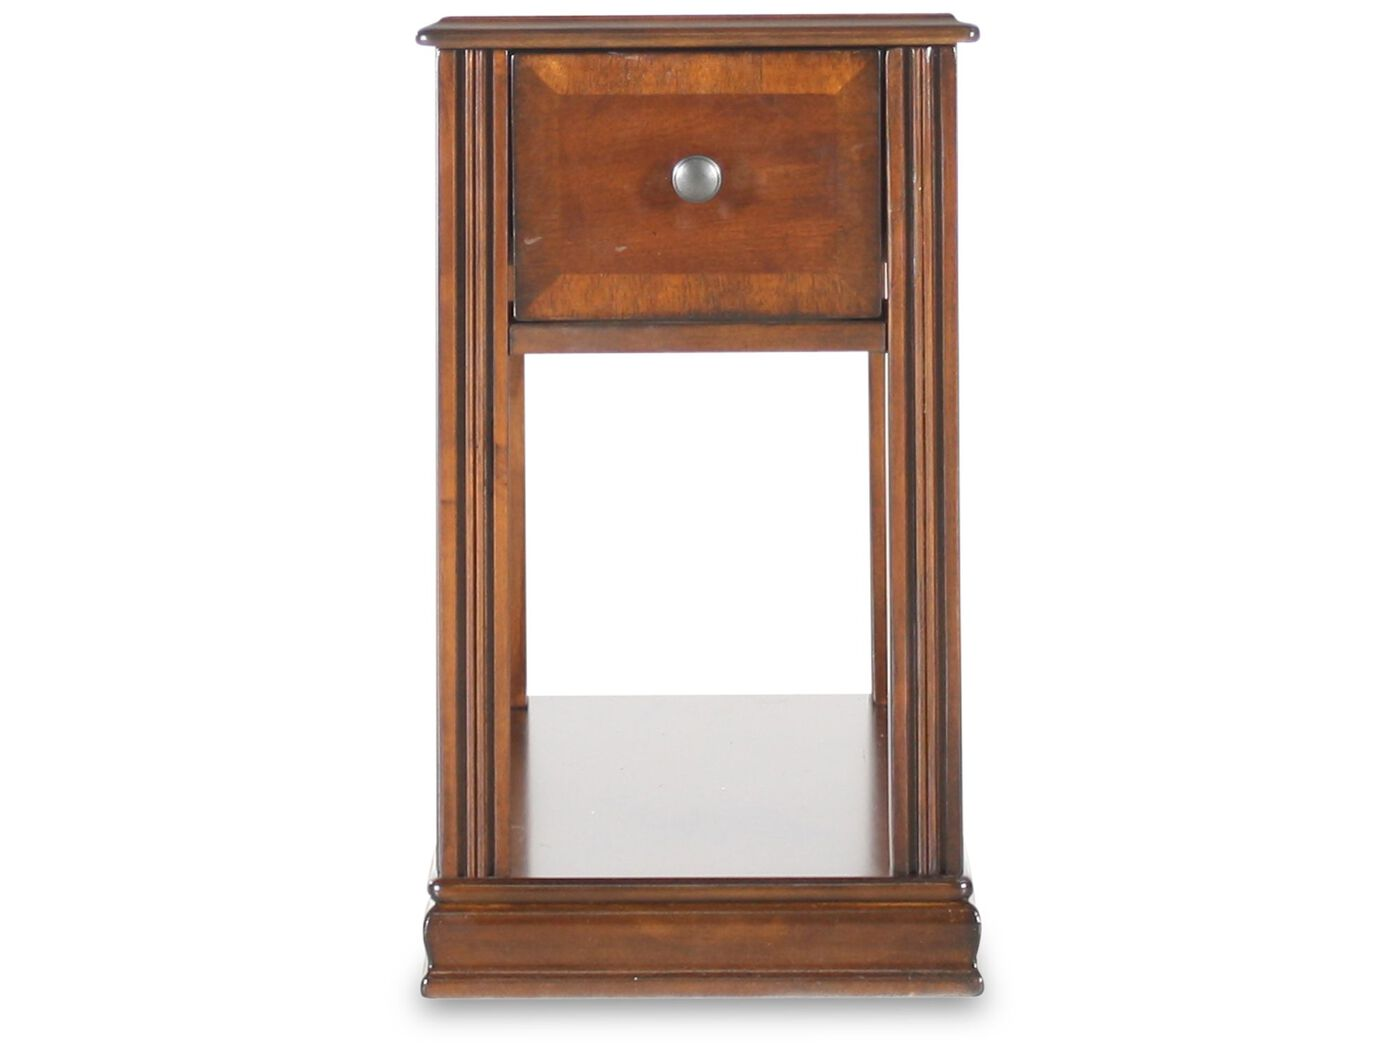 Rectangular Traditional Chairside Accent Table in Medium  : ASH T007047527 from www.mathisbrothers.com size 1333 x 1000 jpeg 60kB